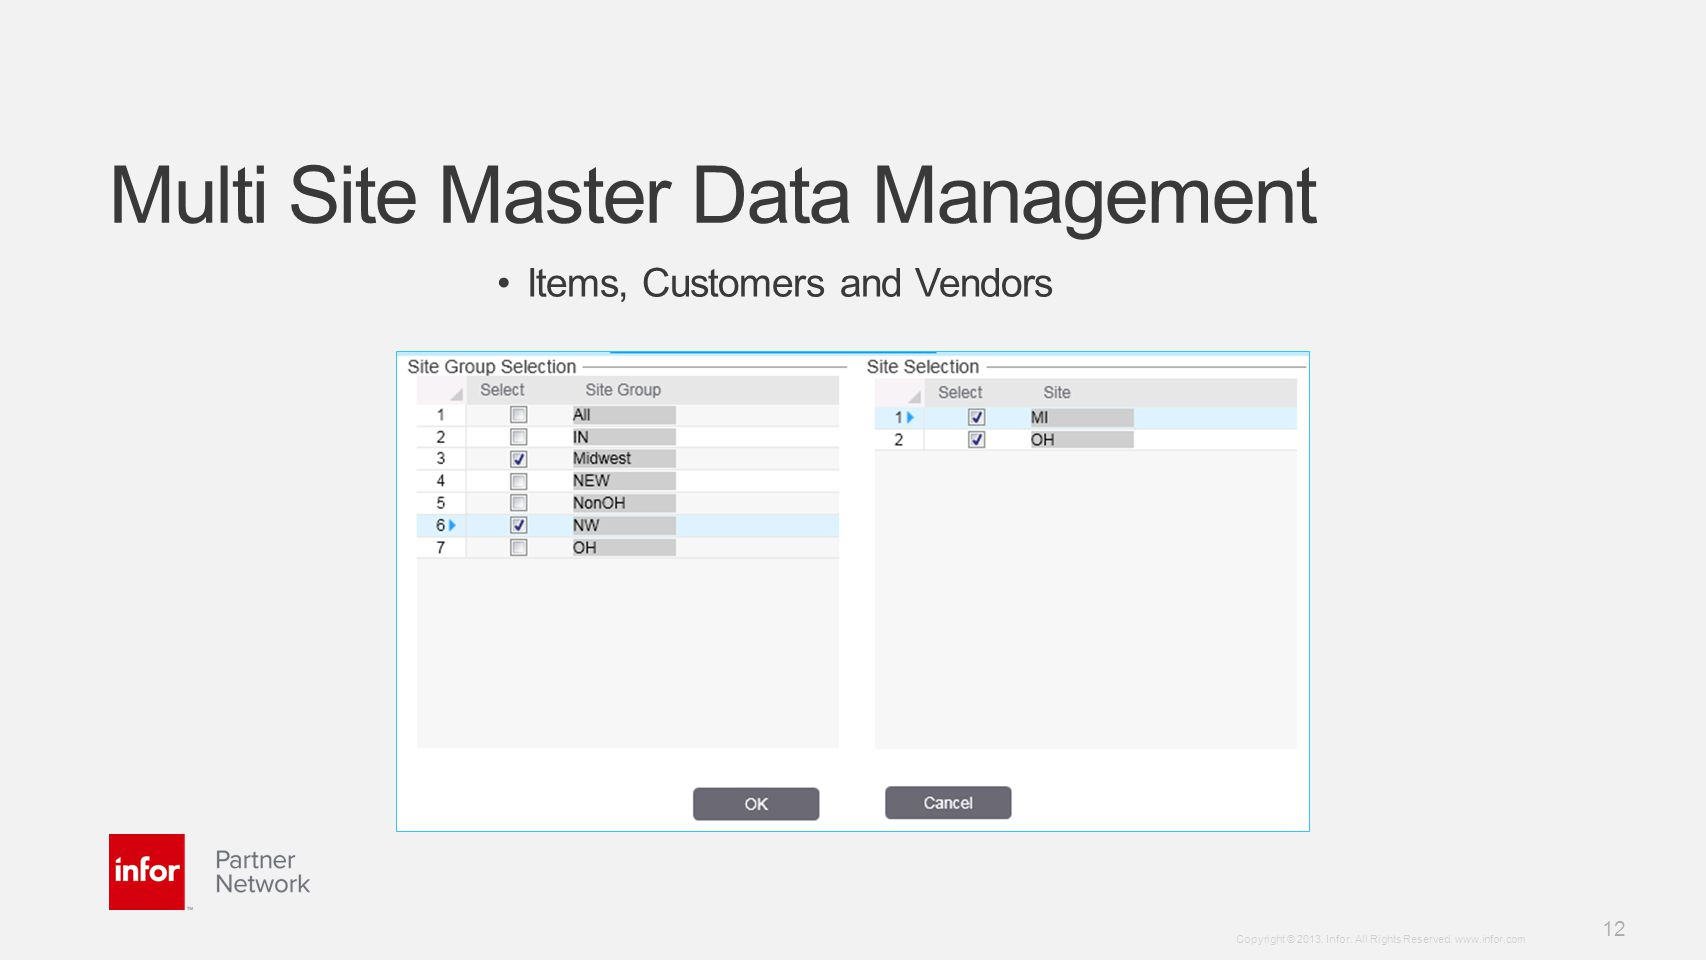 Template v5 October 12, 2012 12 Copyright © 2013. Infor. All Rights Reserved. www.infor.com Multi Site Master Data Management Items, Customers and Ven